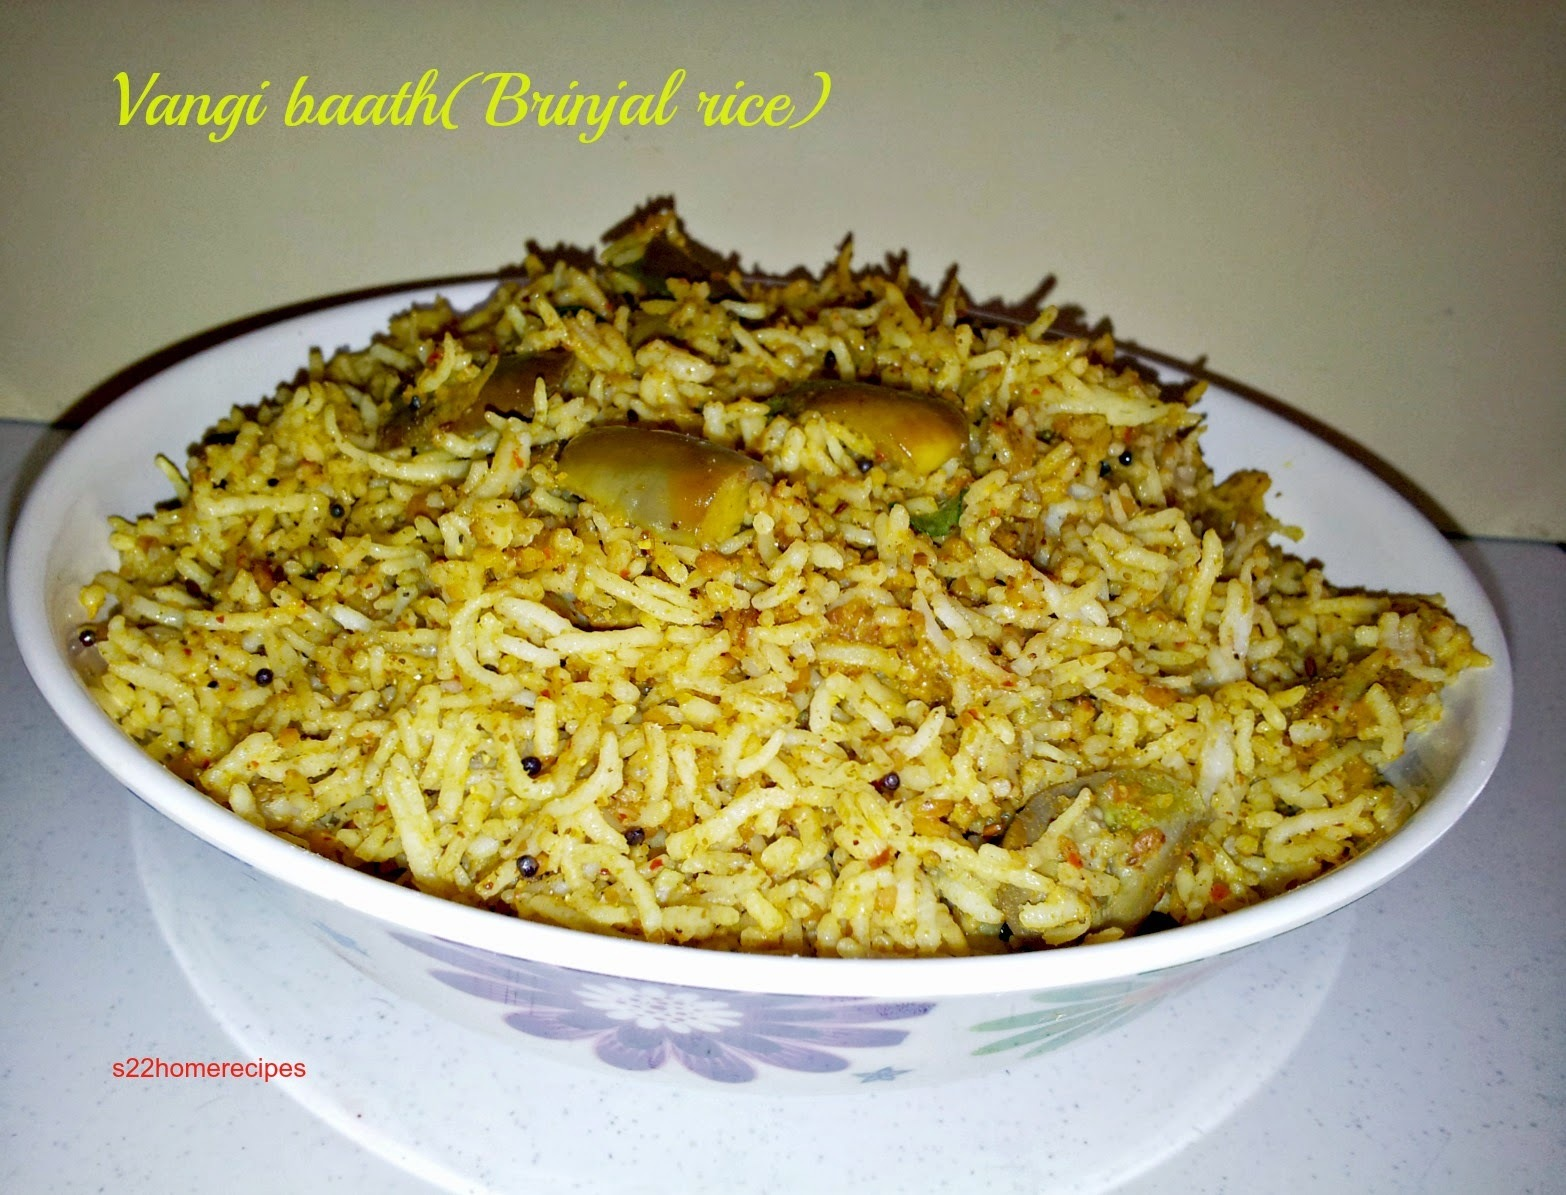 Vangibaath/Brinjal rice